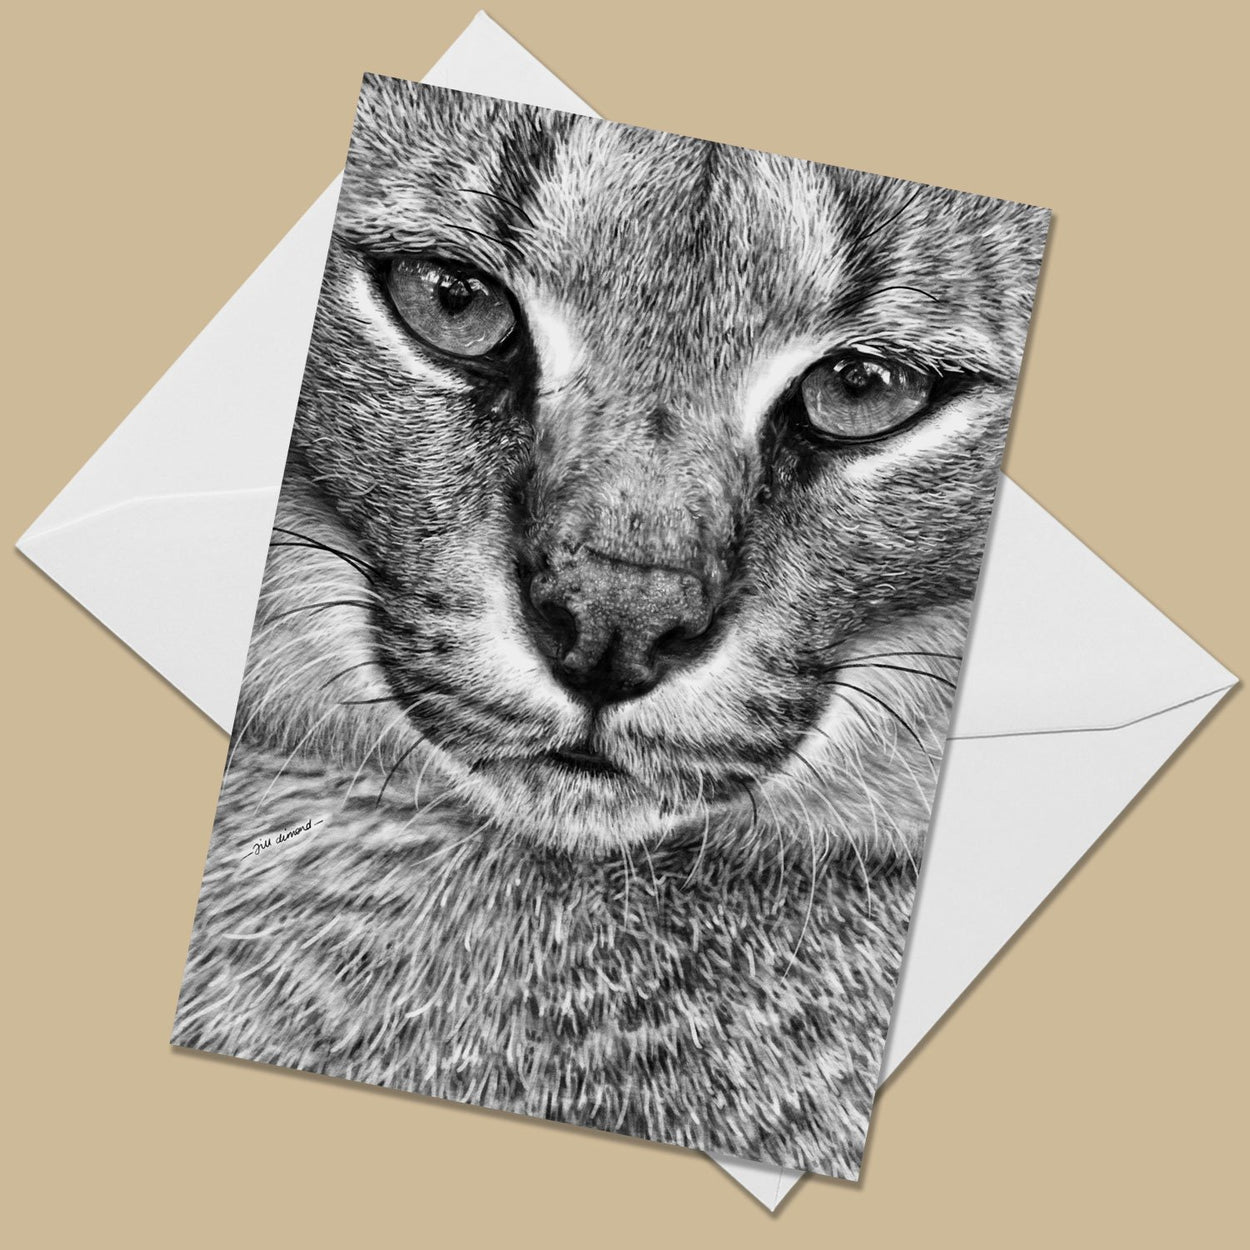 Caracal Greeting Card - The Thriving Wild